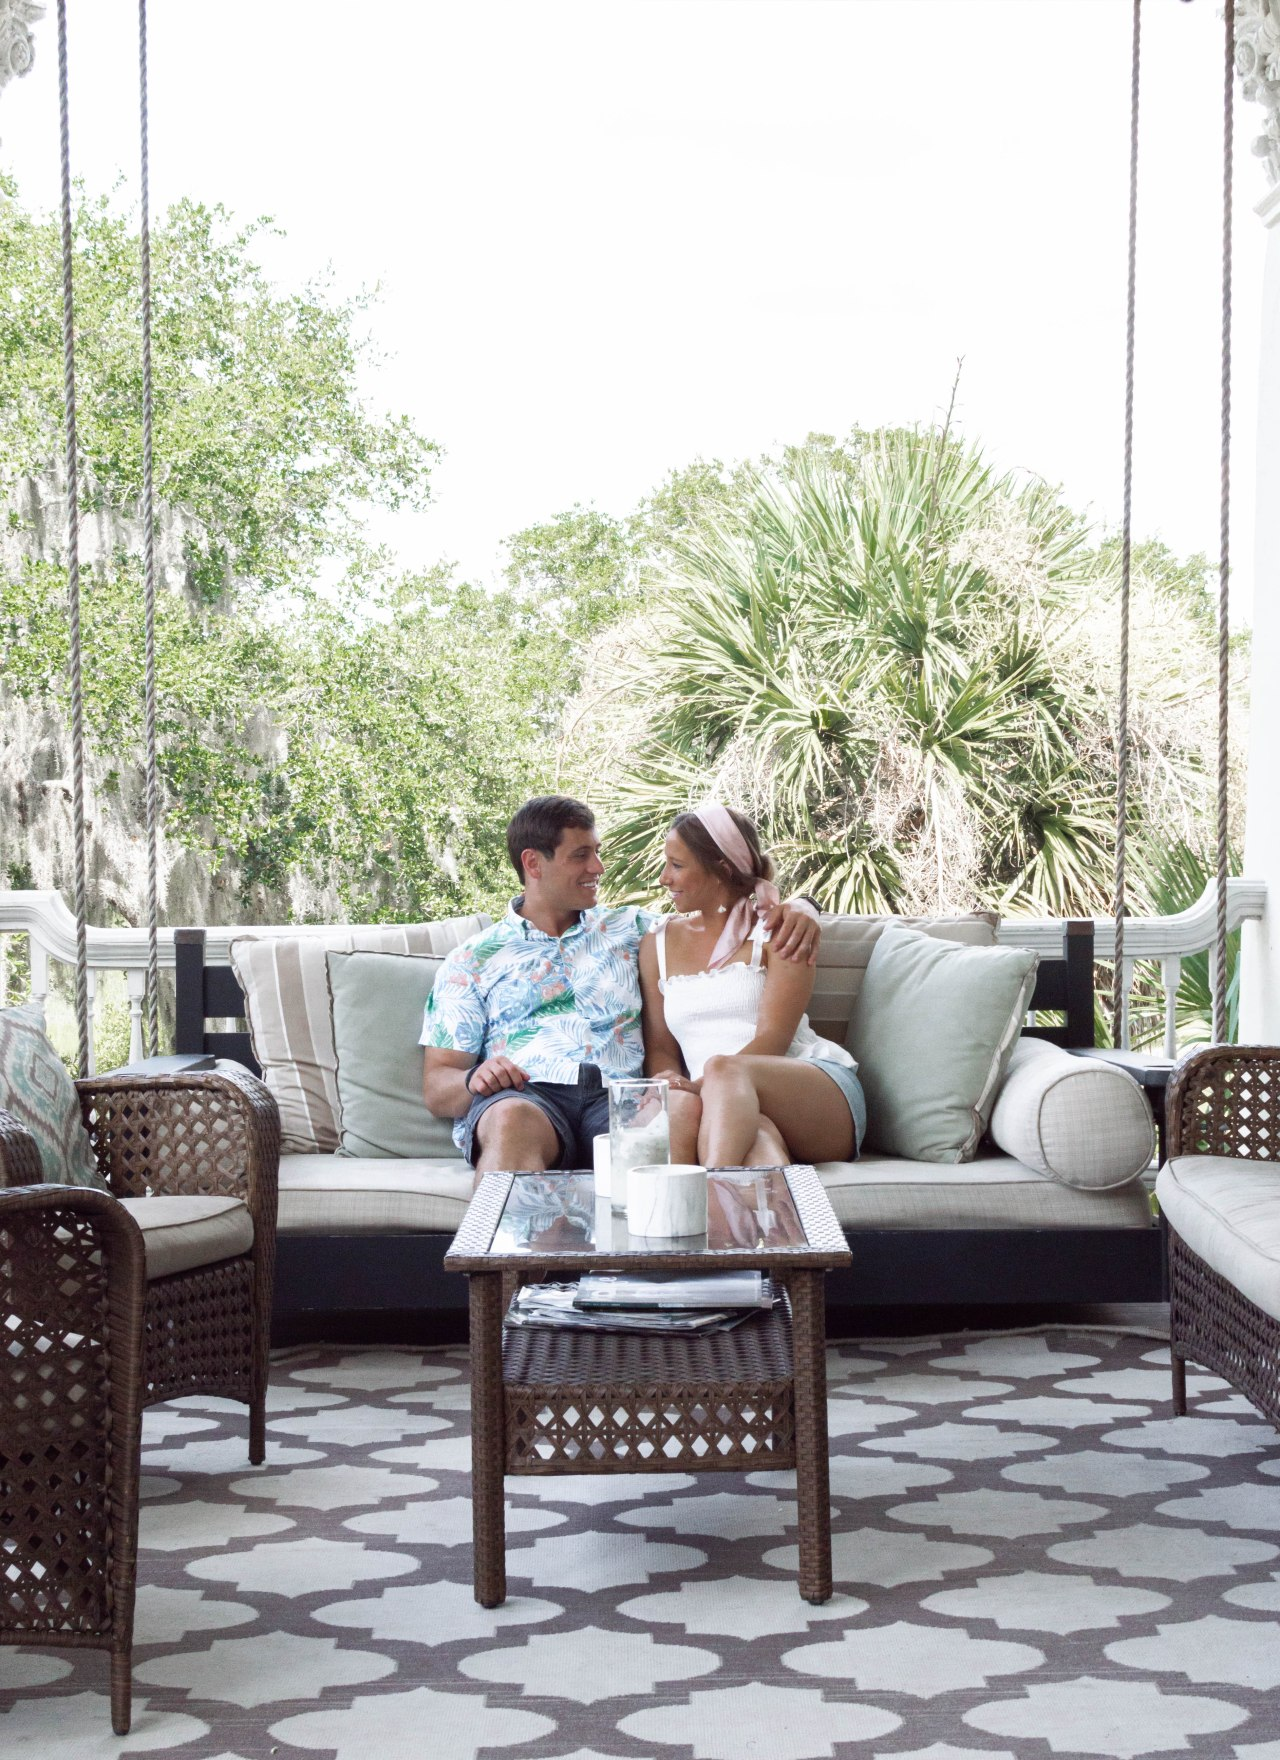 Beaufort, South Carolina Travel Guide | Where to Stay, Where to Eat, What to Do